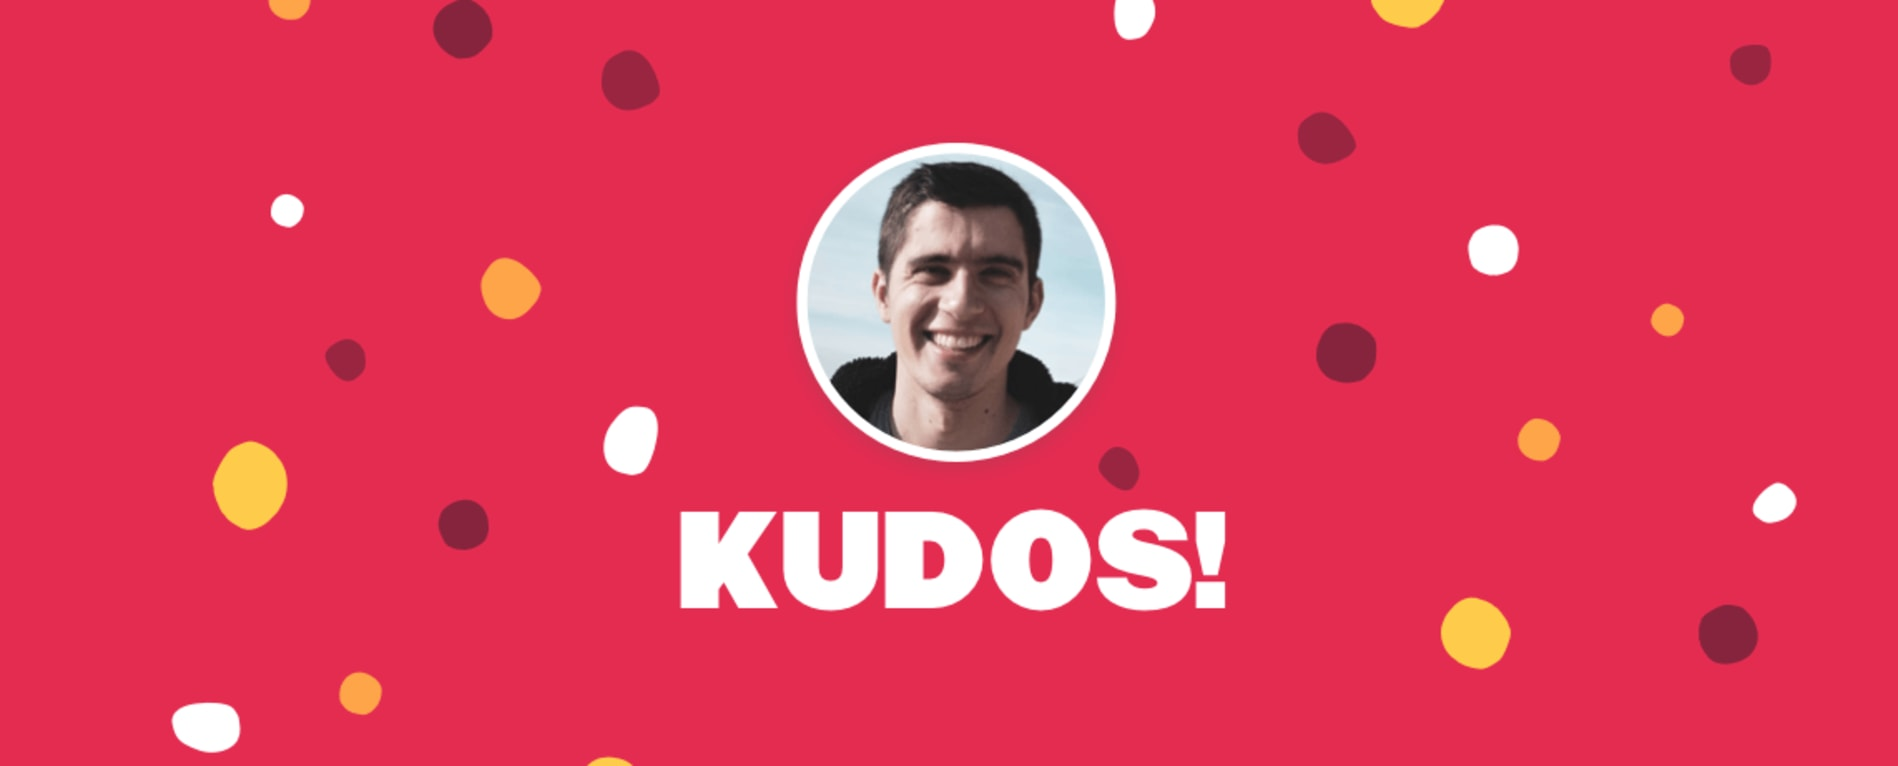 Announcing Kudos: The feature that recognizes people  - Kudos_01-Copy-2.png